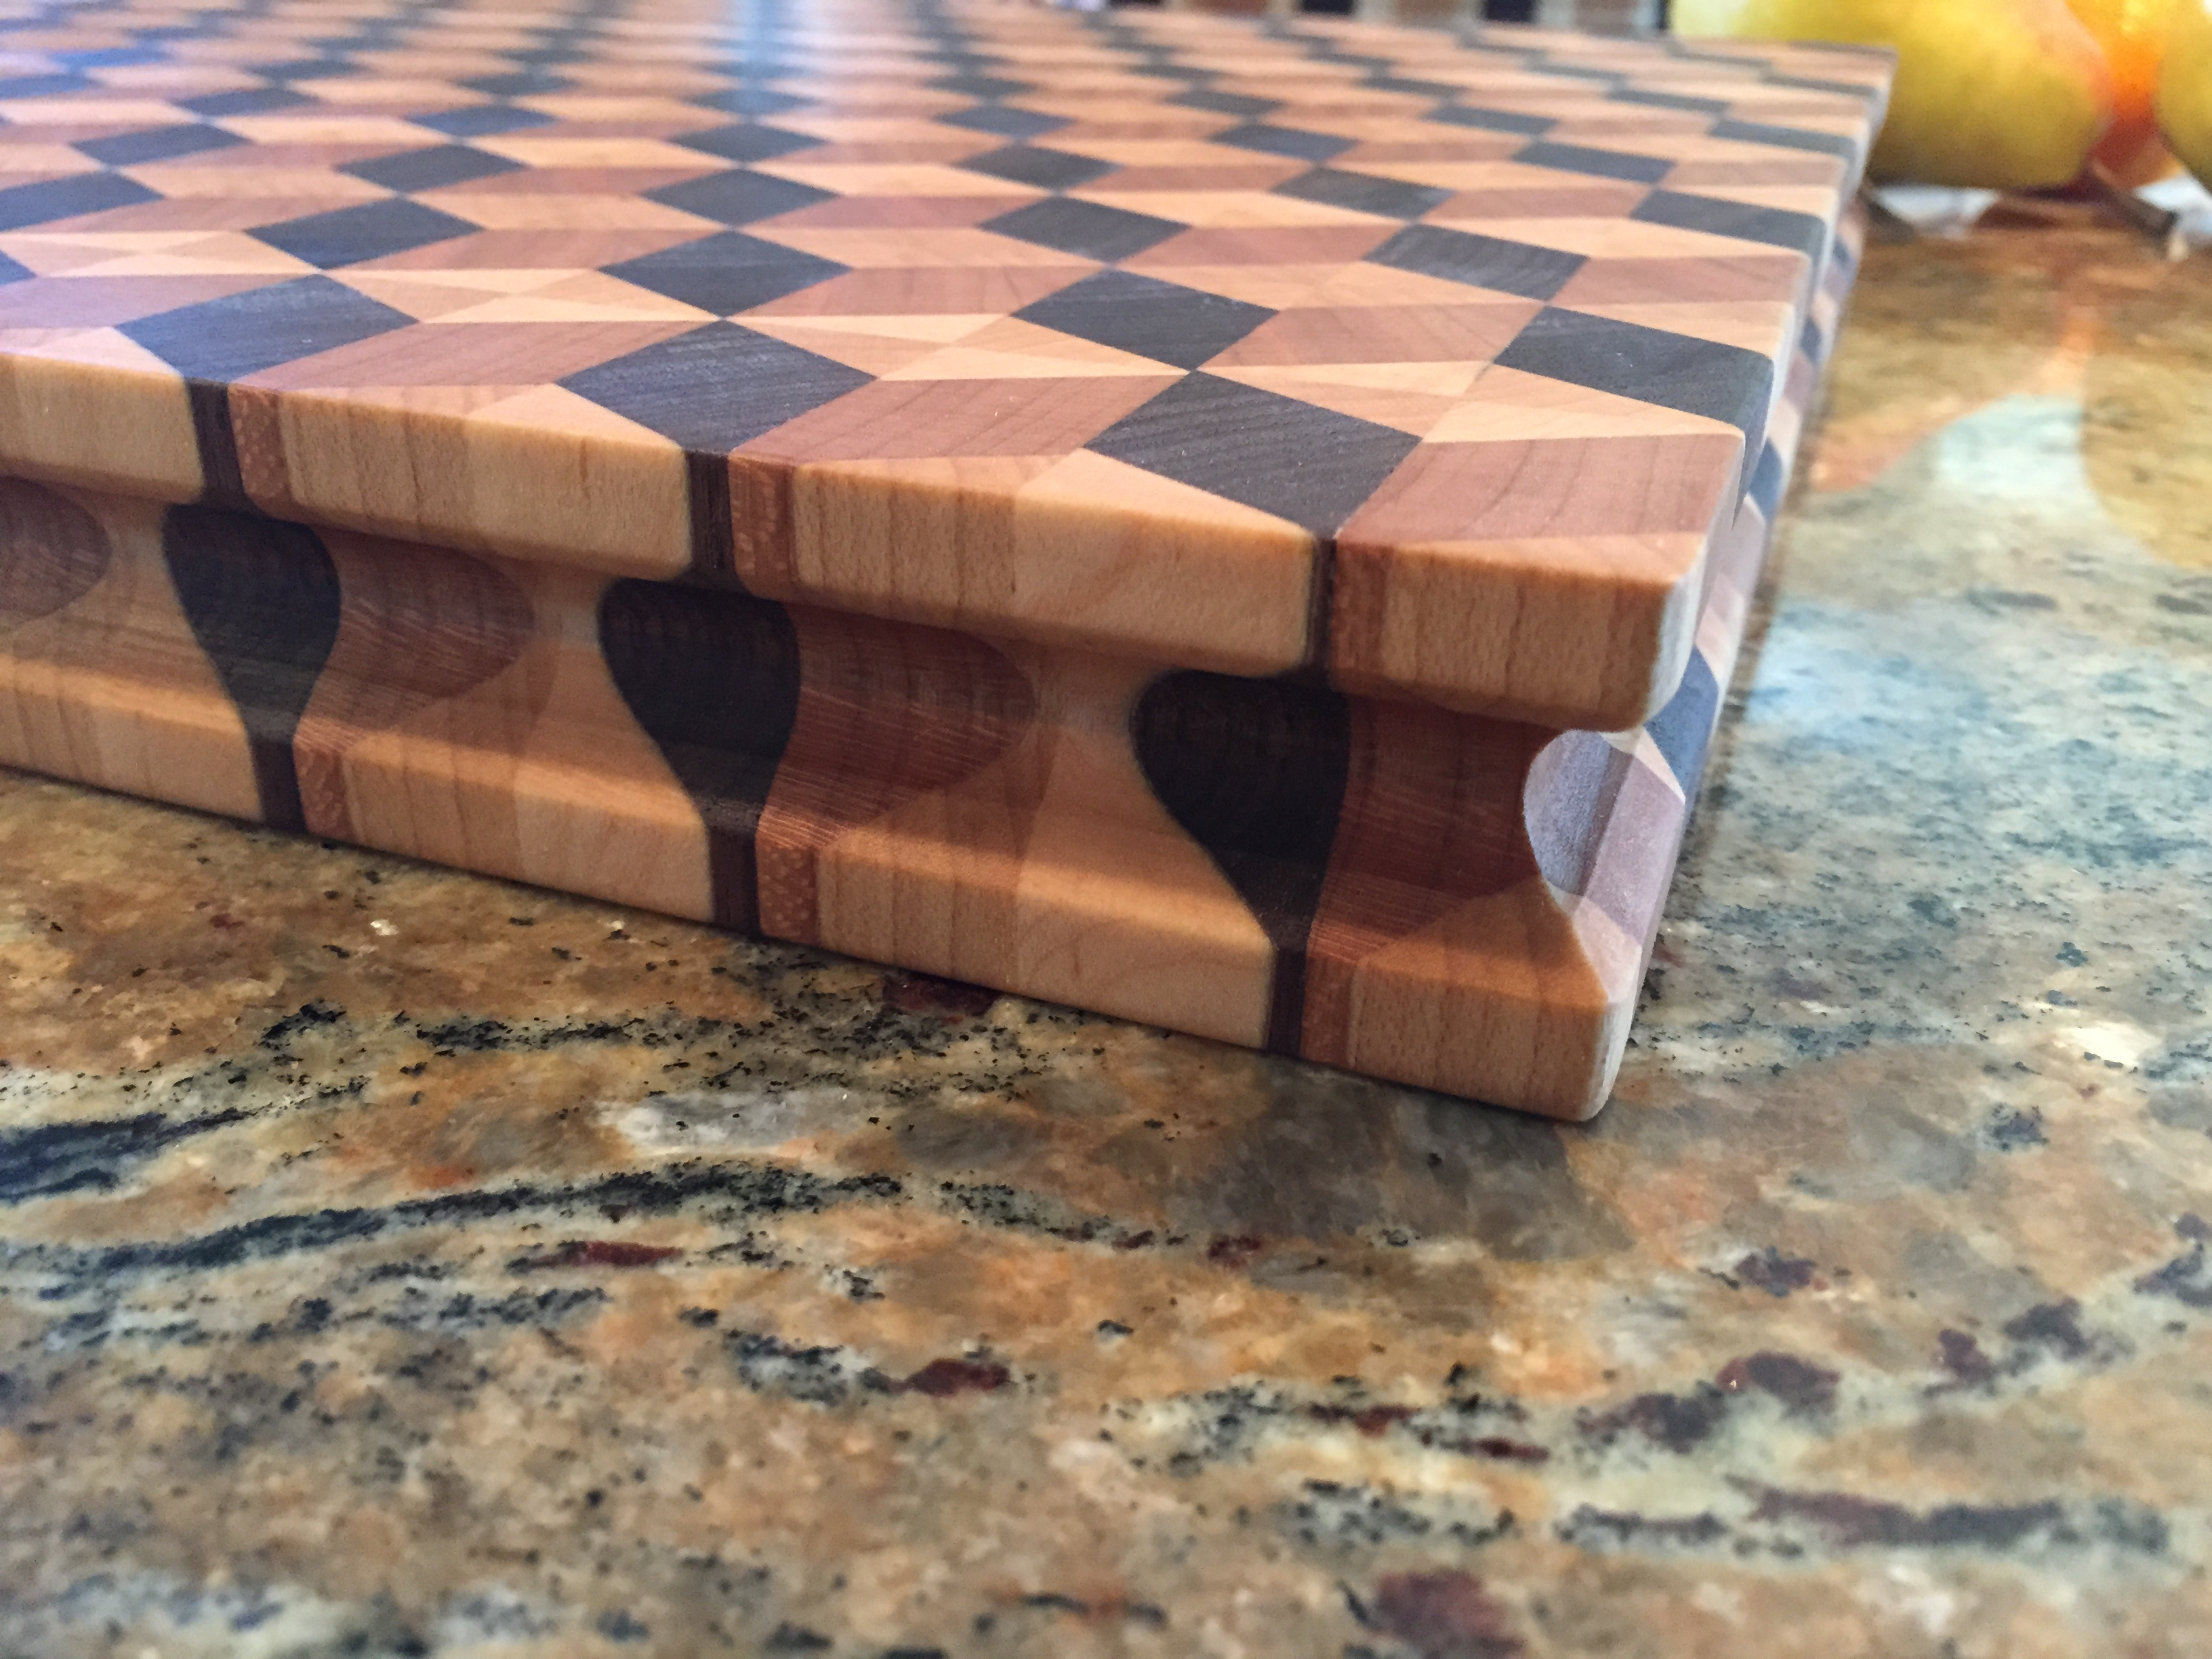 #17 Rectangular serving/cutting board 3D illusion